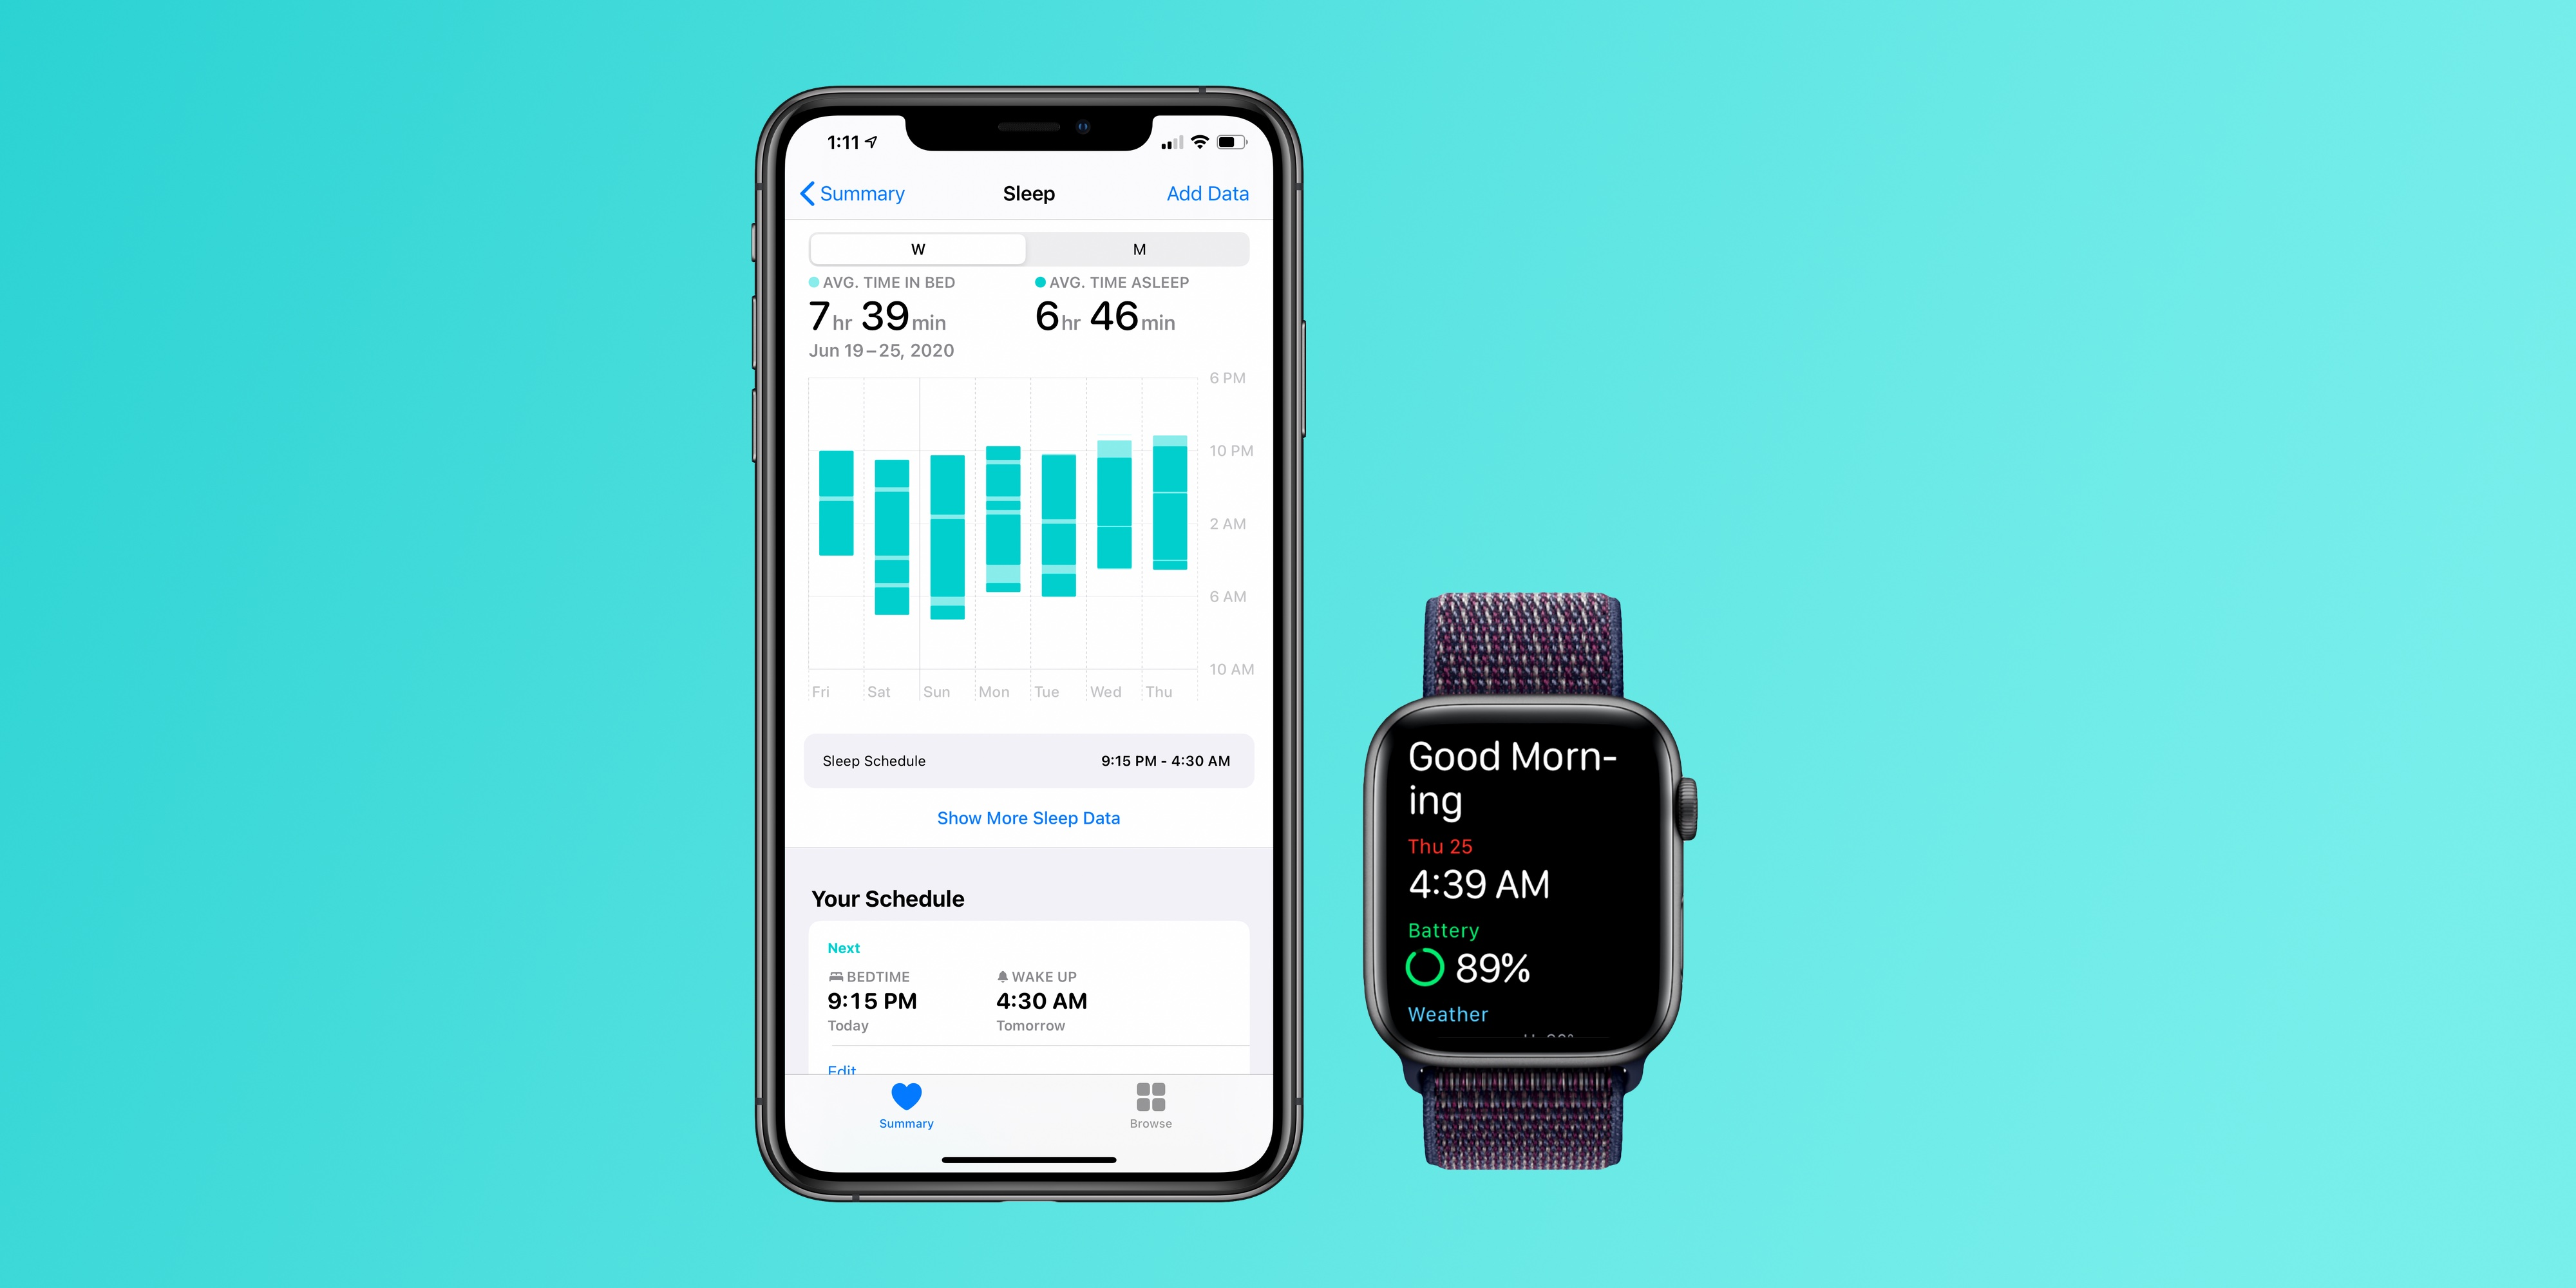 photo of Apple teams up with UCLA on mental health study using Apple Watch, iPhone, and Beddit sleep tracker image